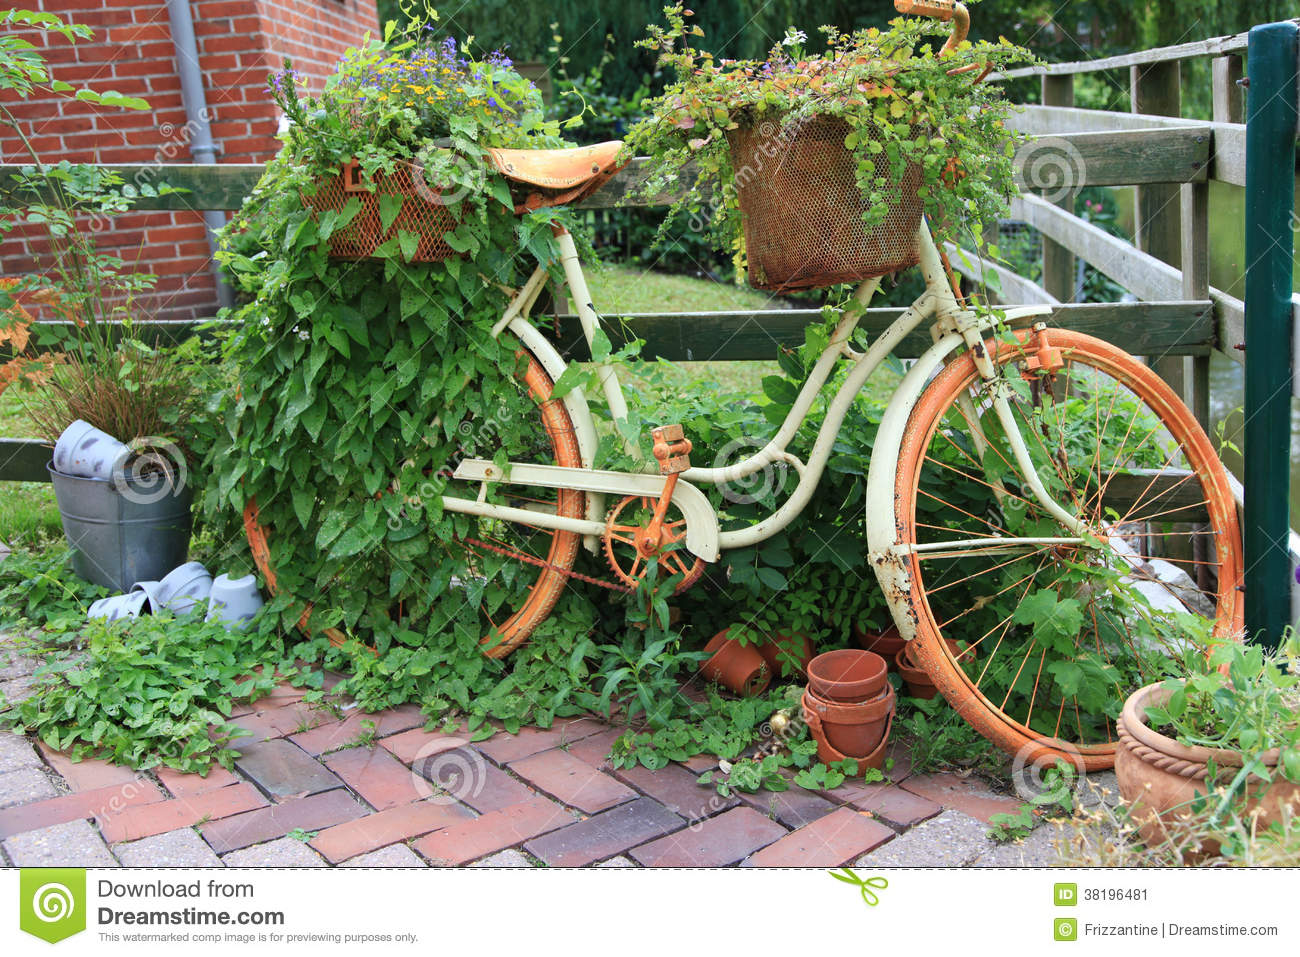 Tuindecoratie met een oude fiets stock afbeelding beeld 38196481 - Landstijl decoratie ...